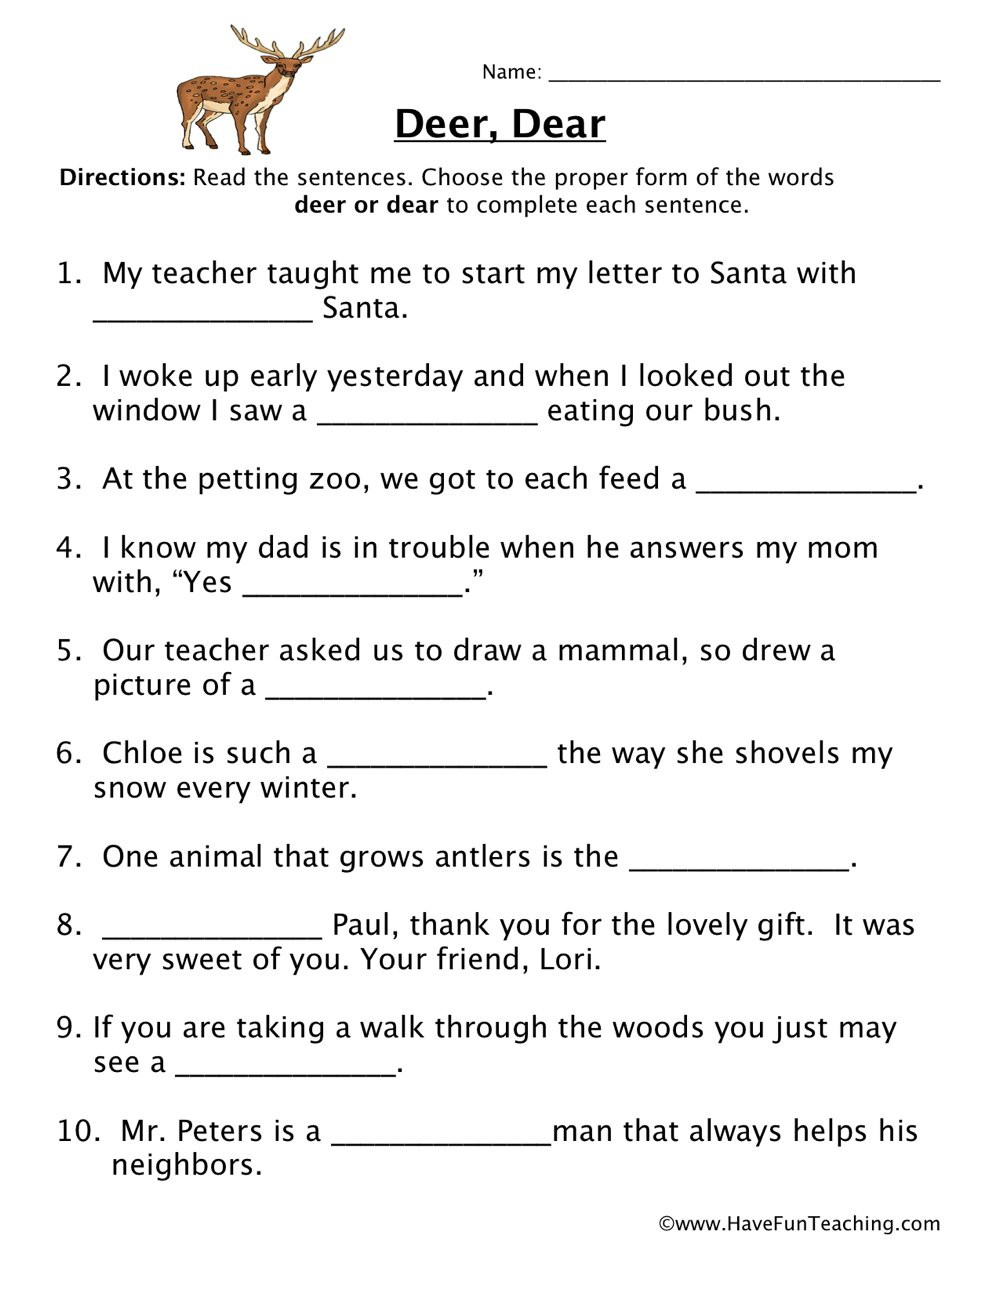 Homophones Worksheets 2nd Grade Deer Dear Homophones Worksheet